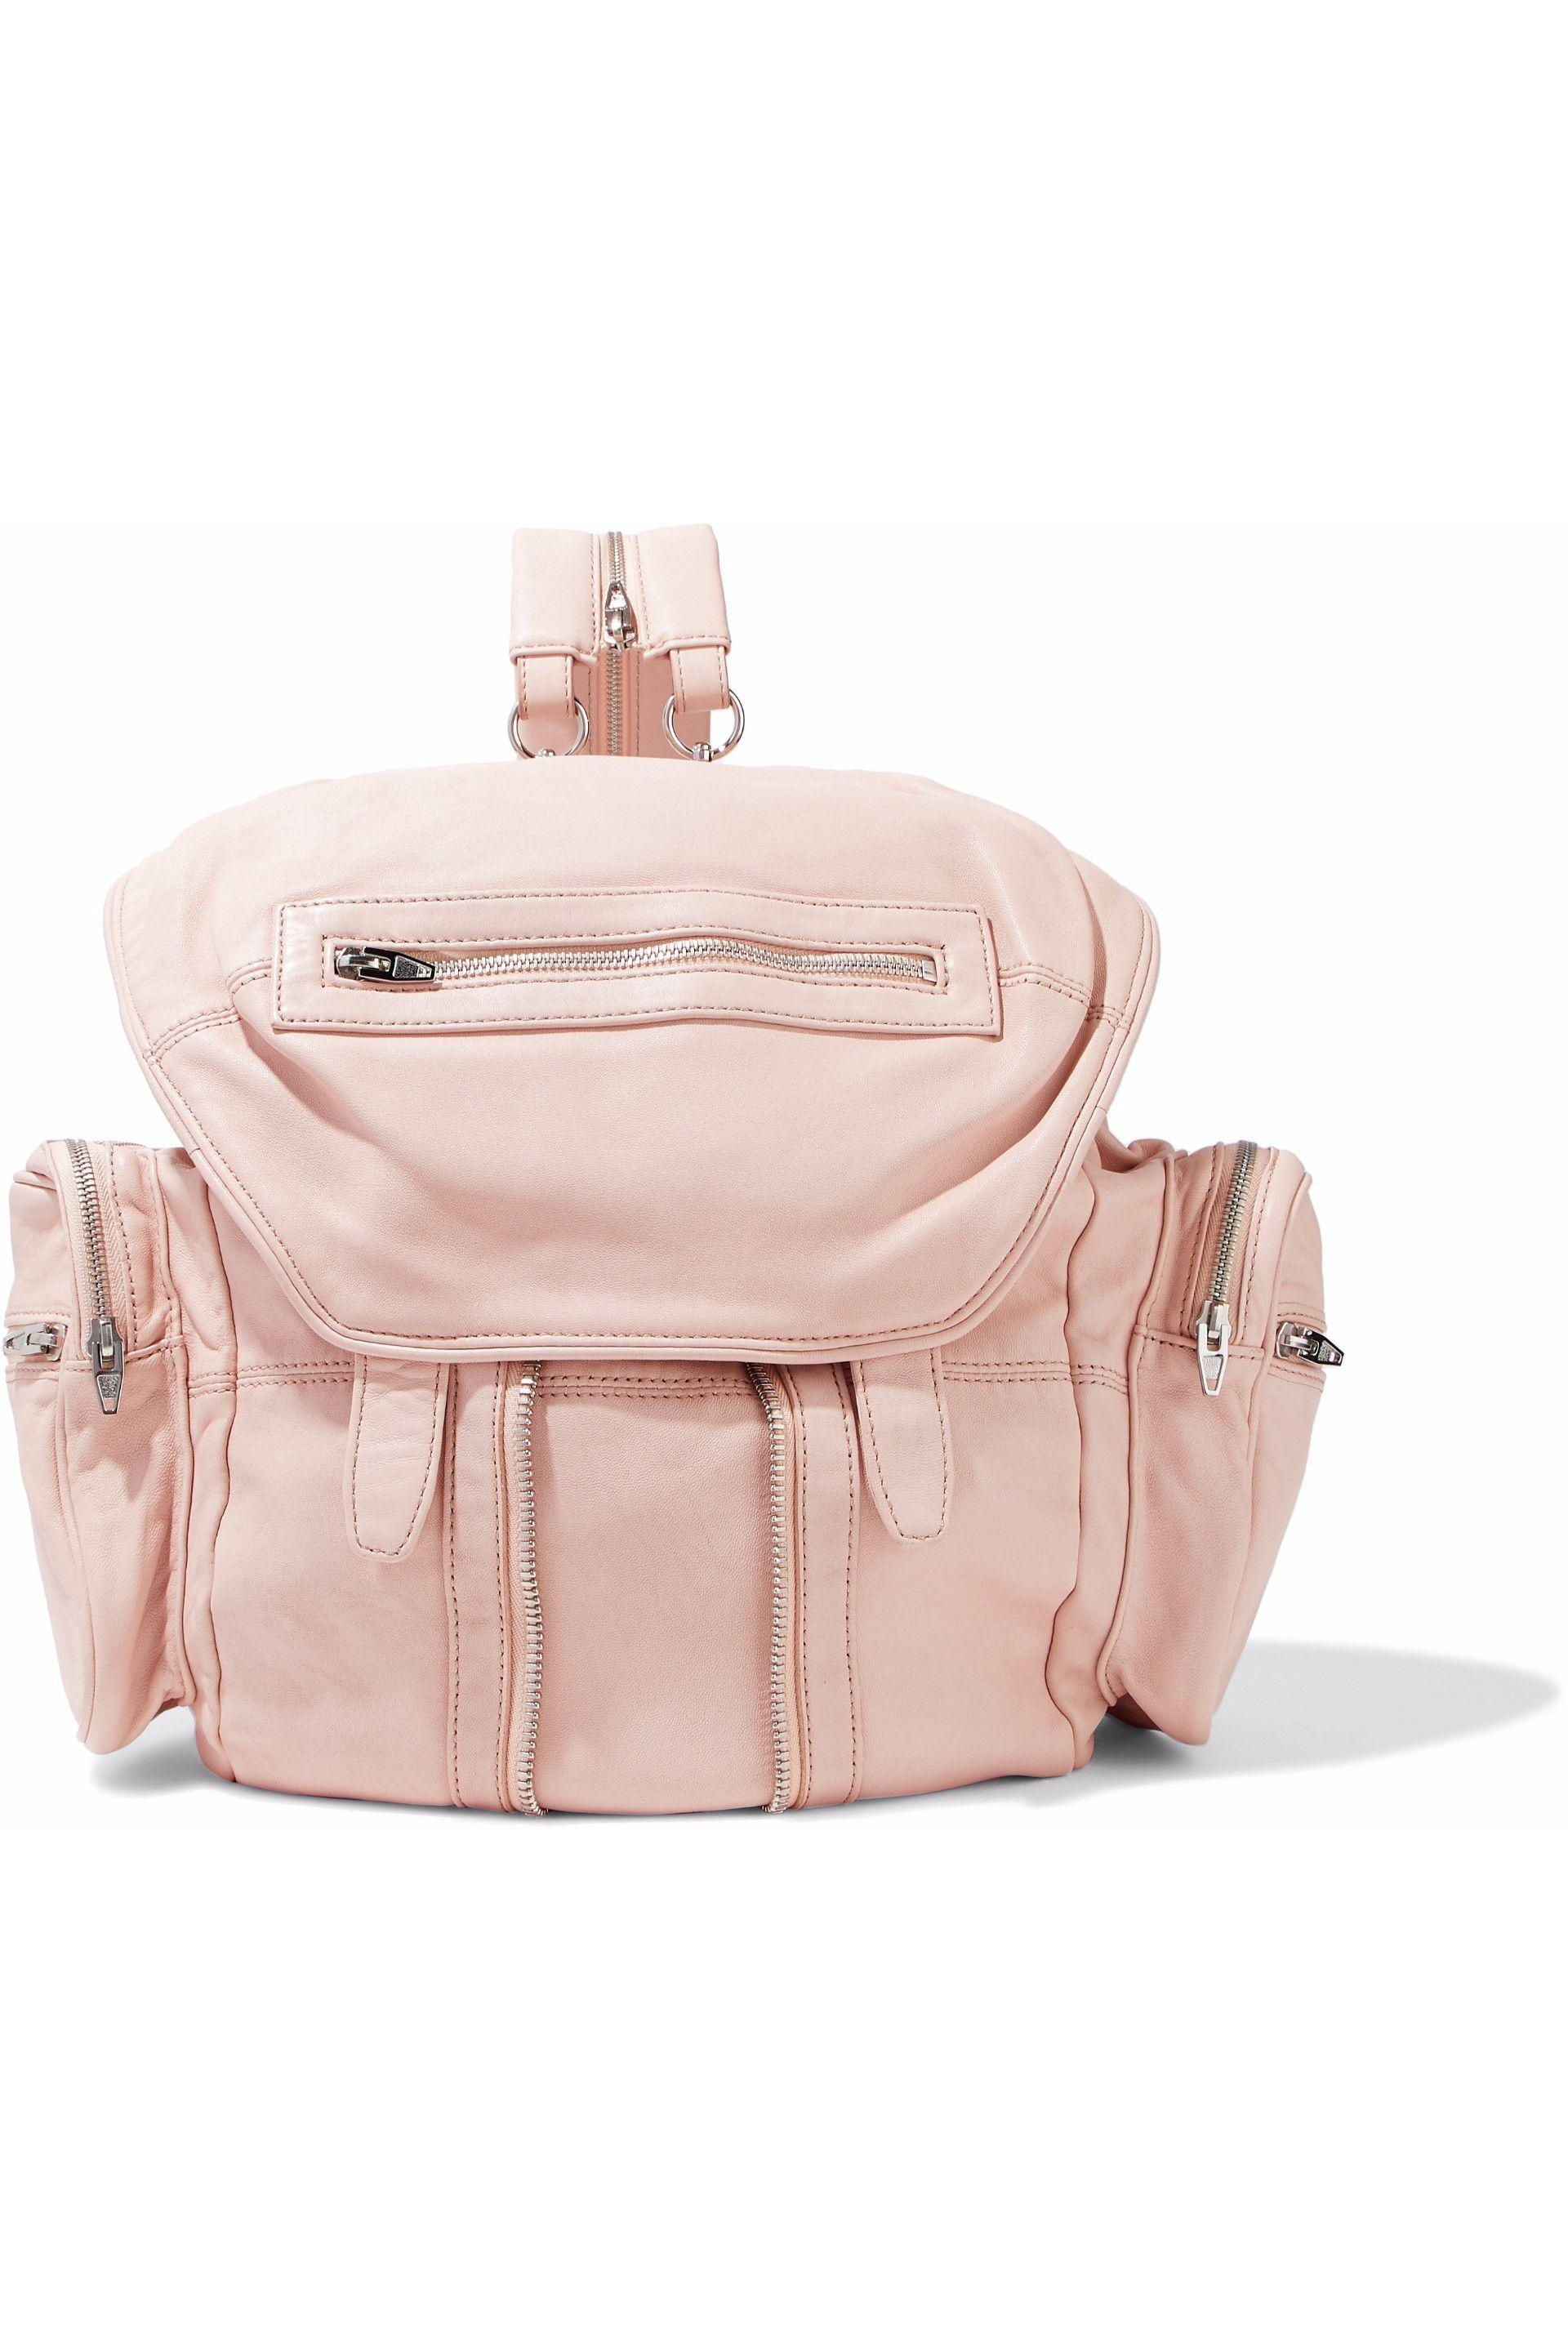 d65179177a8859 Pastel Pink Leather Backpack- Fenix Toulouse Handball